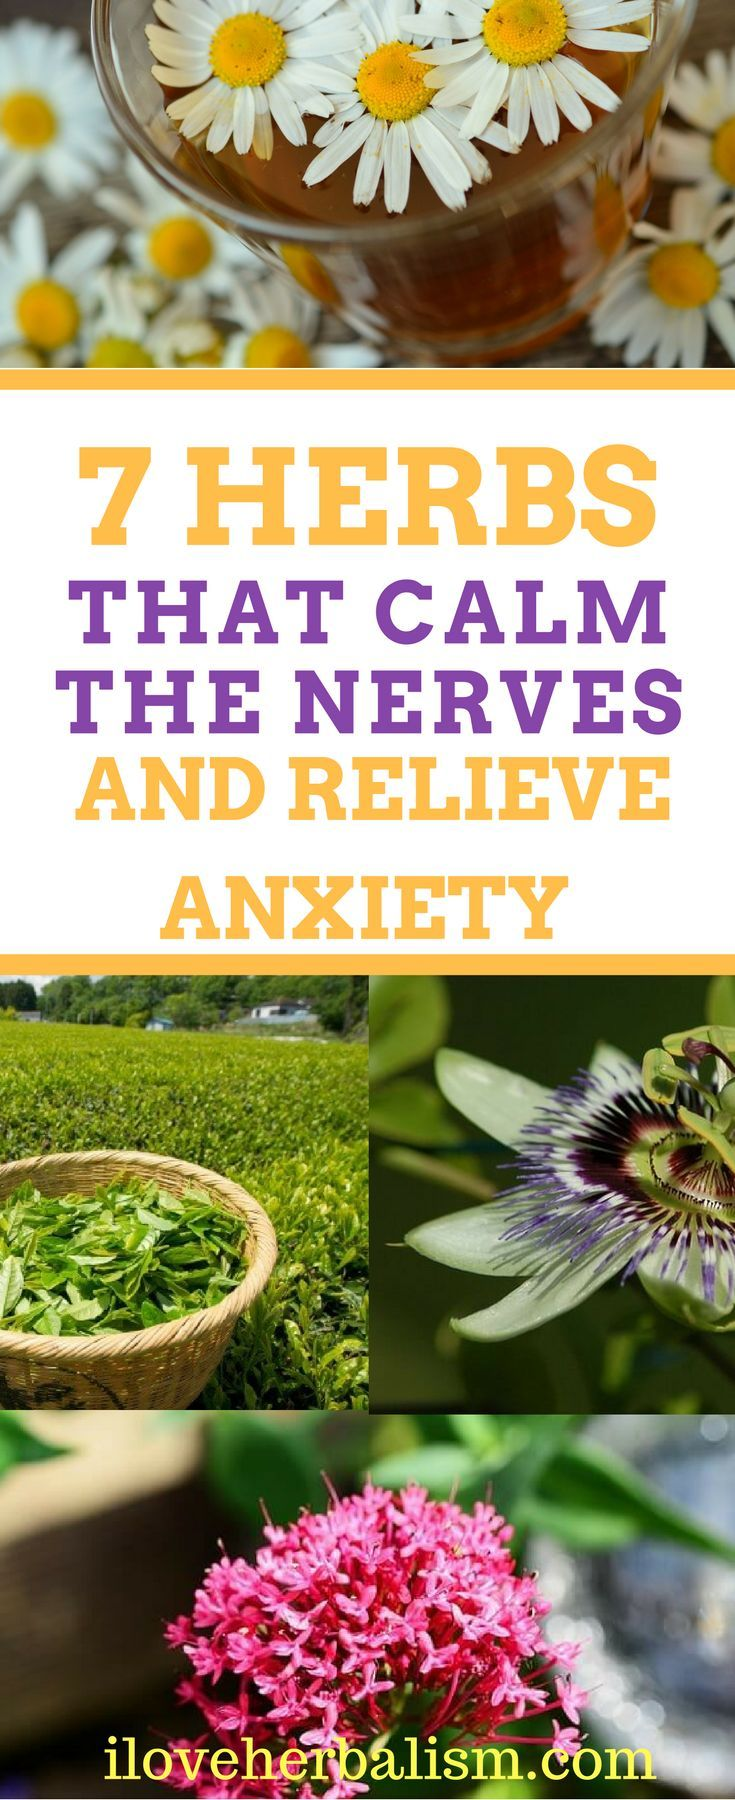 7 Herbs That Calm The Nerves And Relieve Anxiety Naturally!